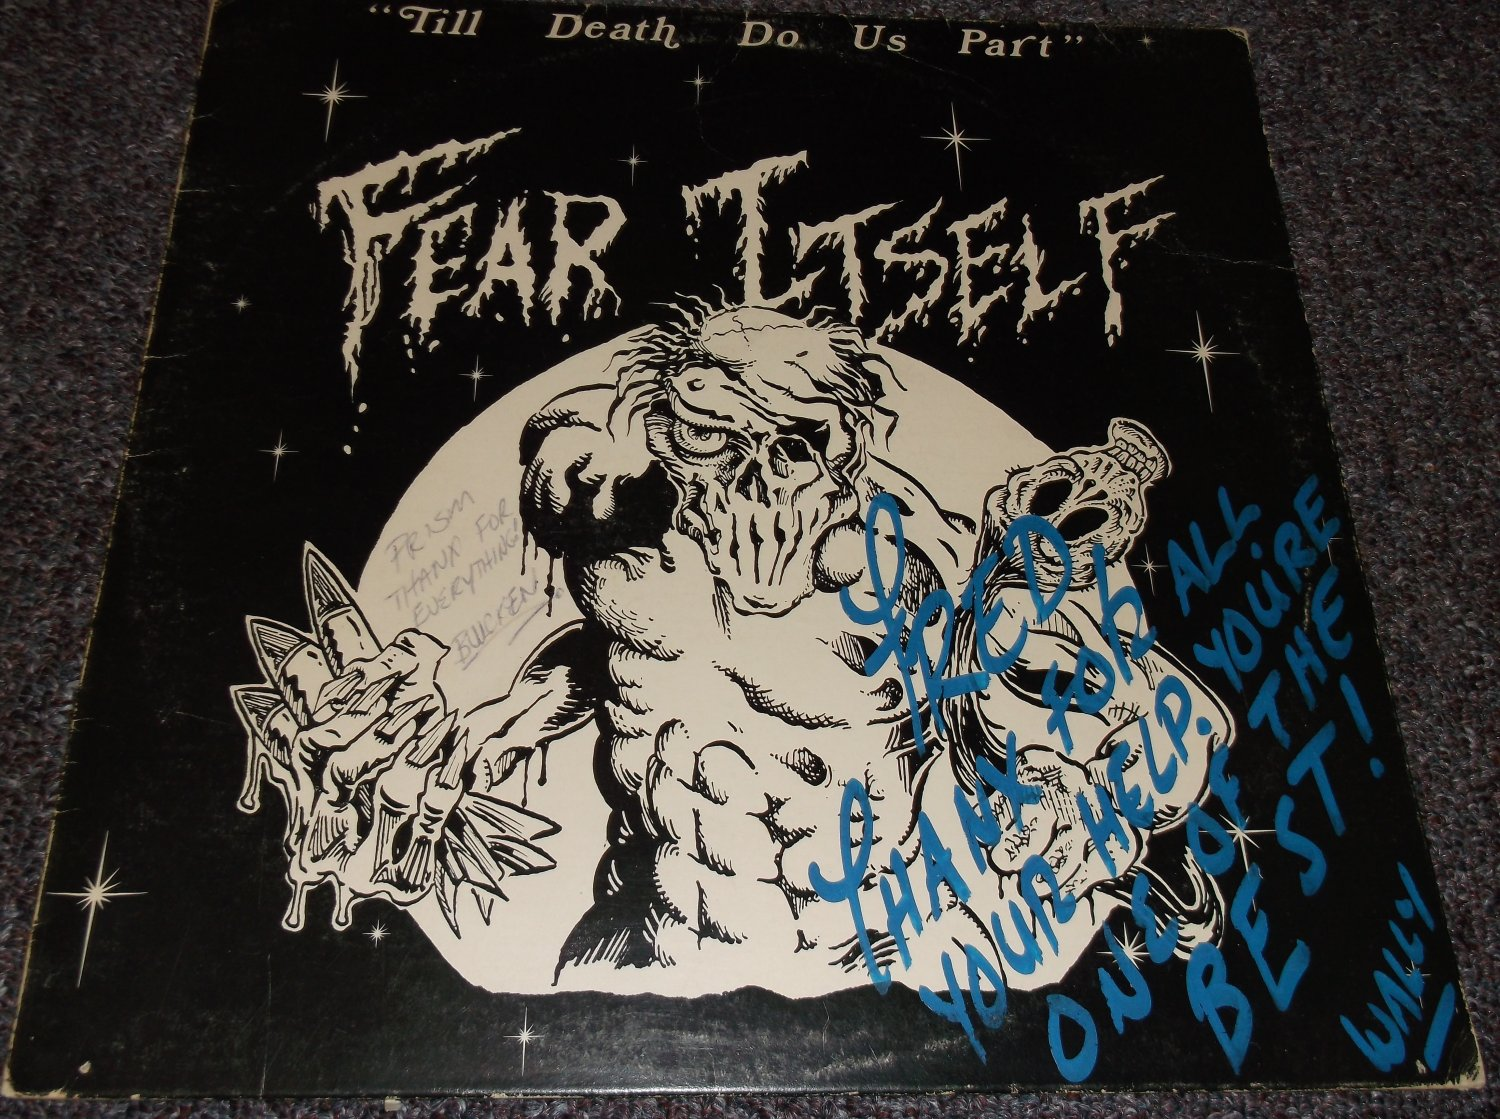 Fear Itself signed inscribed LP cover